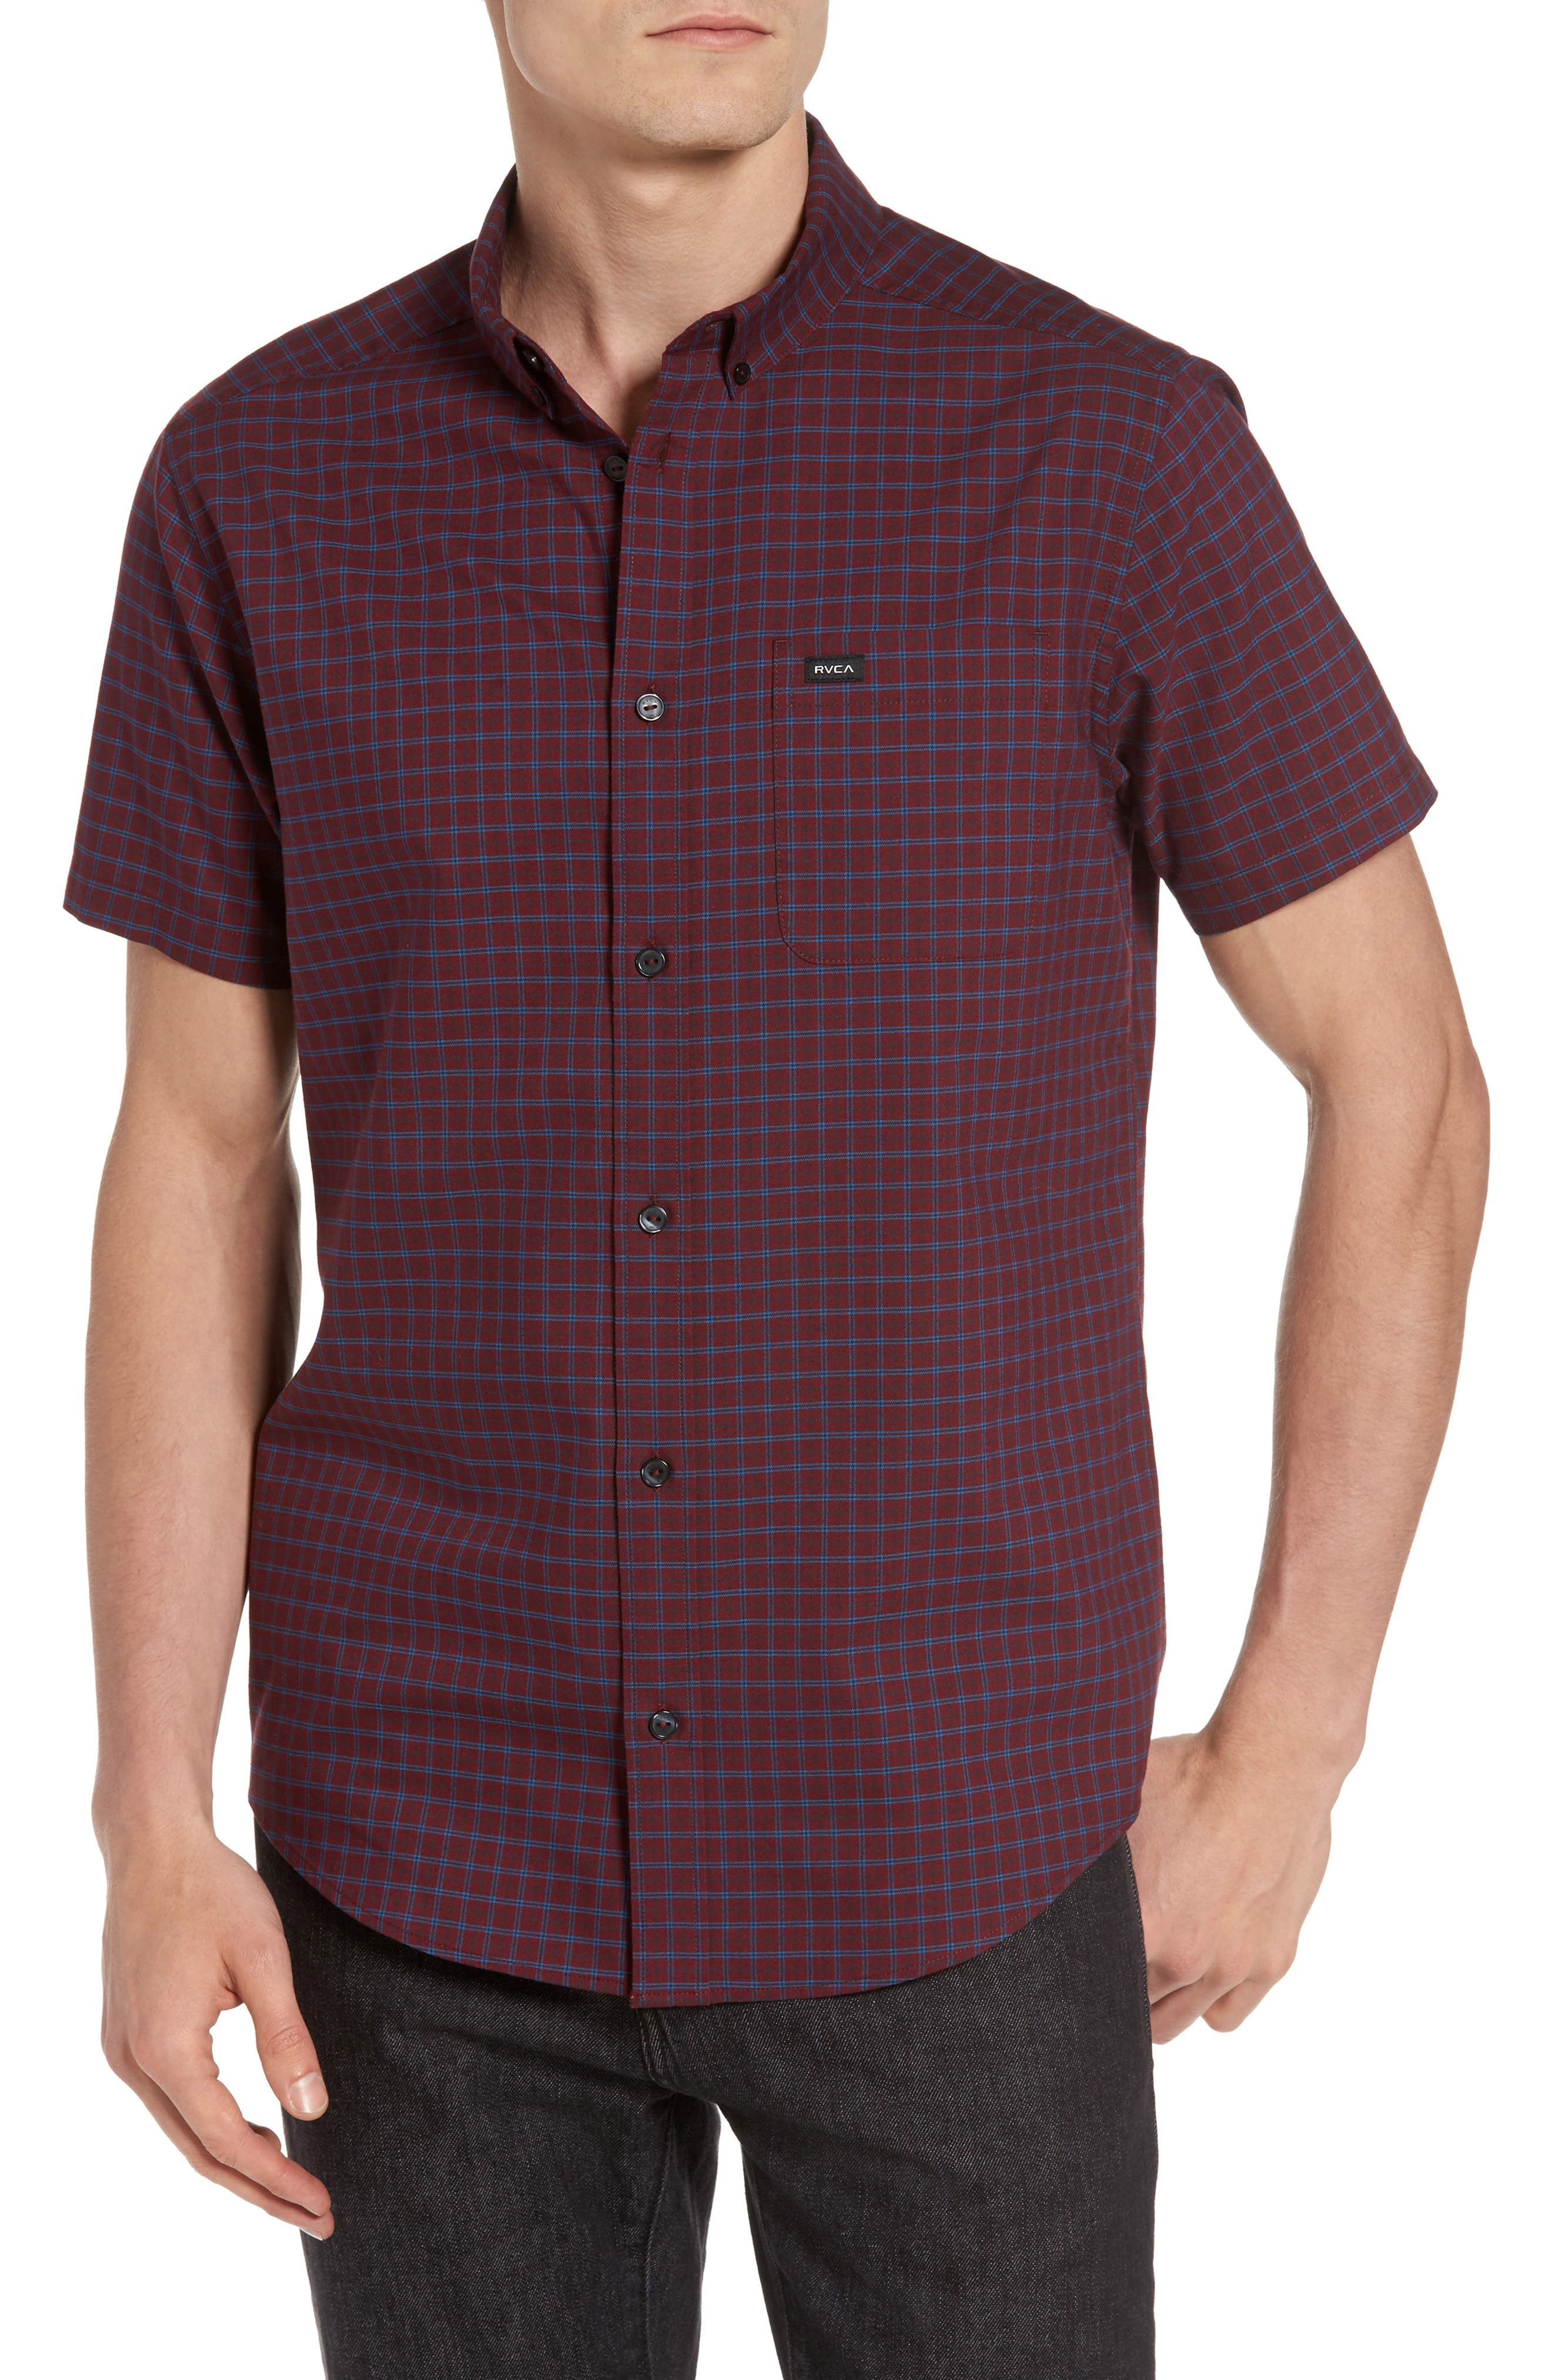 RVCA That'll Do Tattersall Woven Shirt